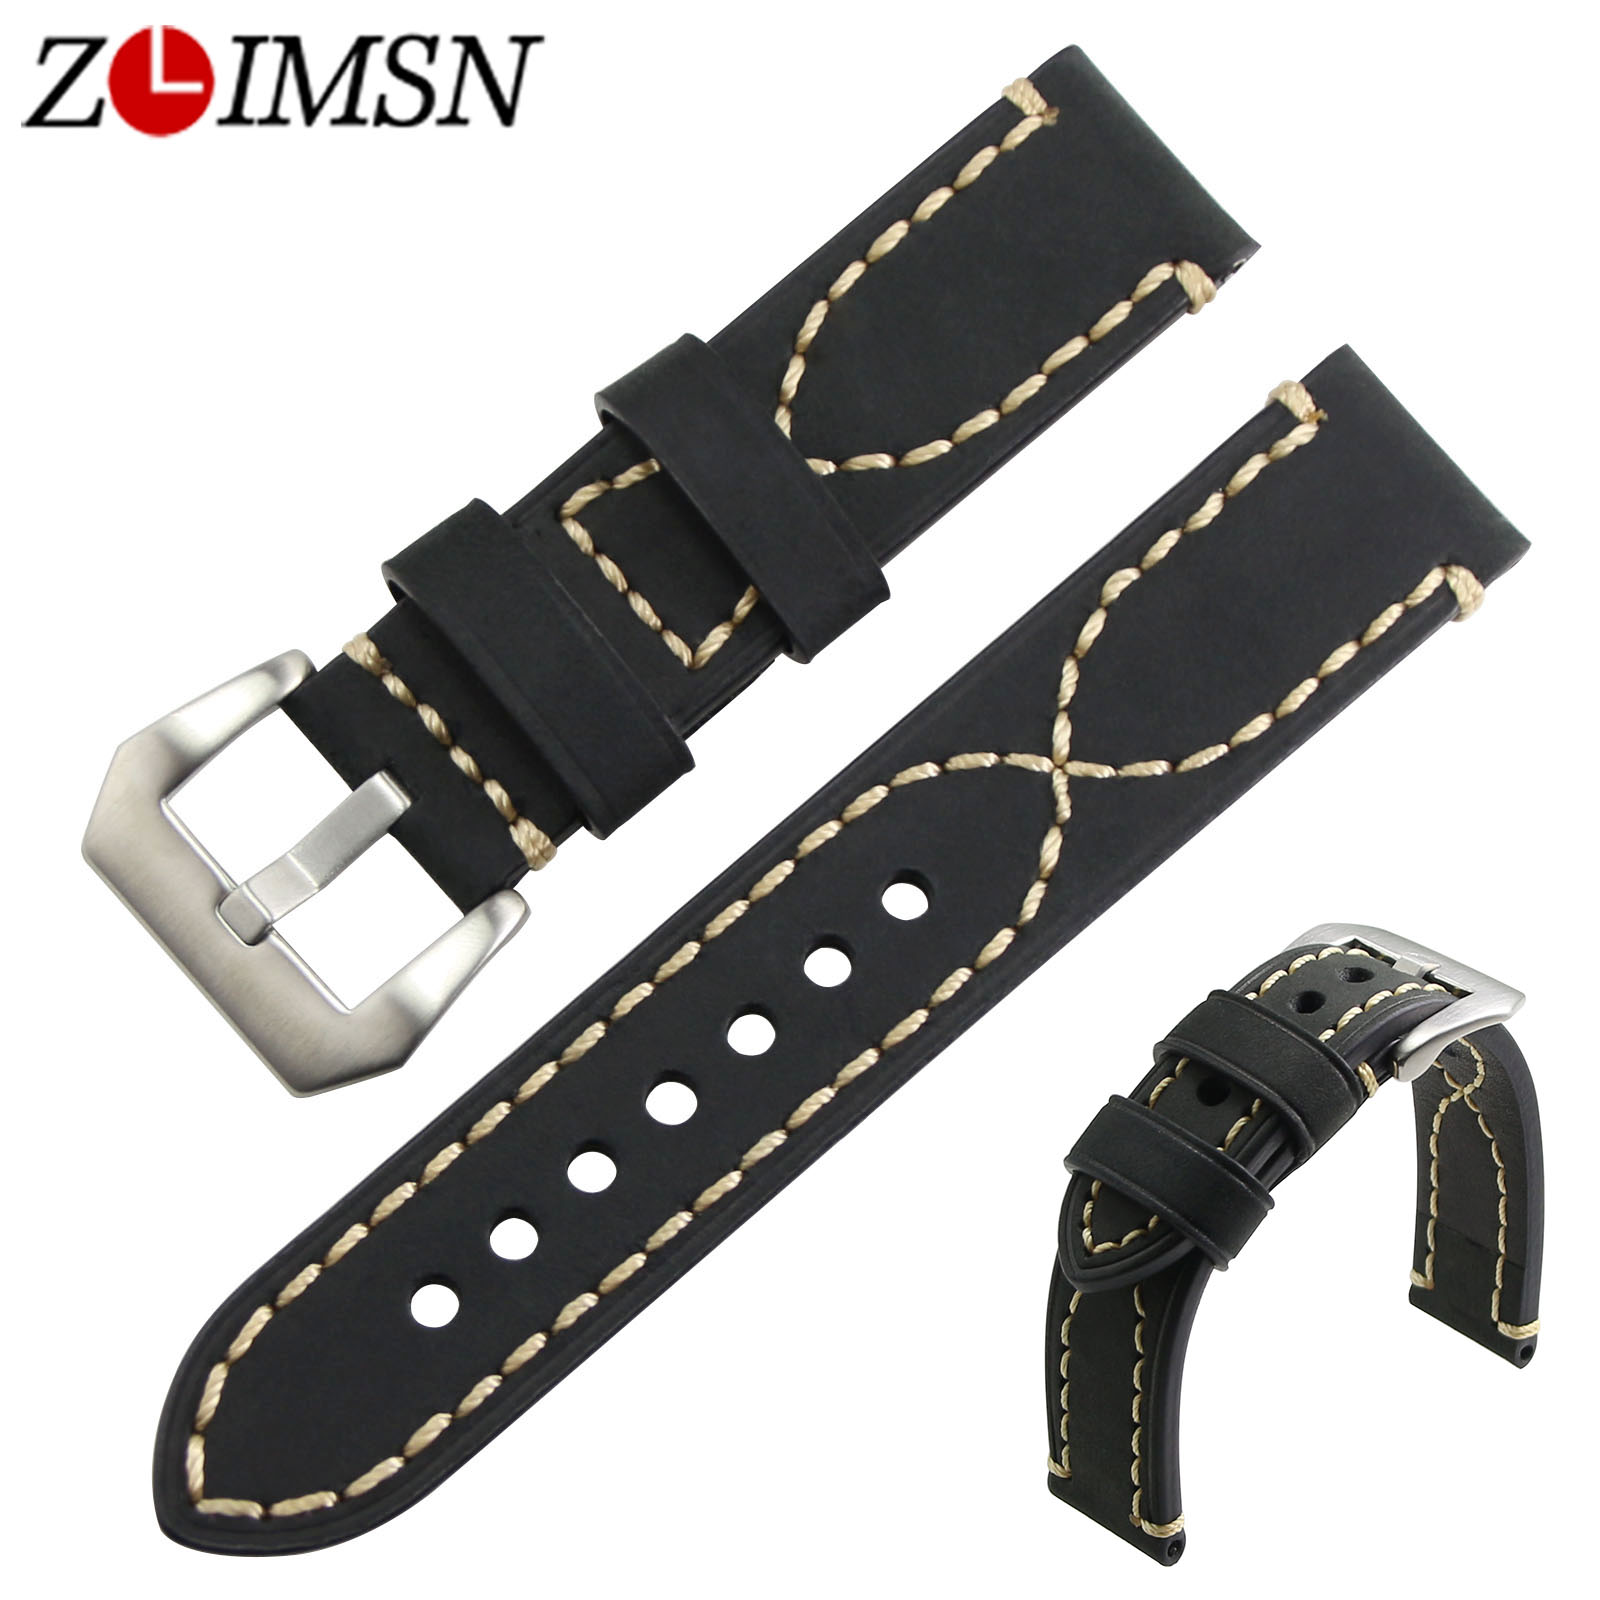 ZLIMSN Genuine Leather Watchbands Black Brown Yellow Thick Watch Band Strap Belt Stainless Steel Buckle Brushed 20 22 24 26mm zlimsn alligator leather watch bands strap watches accessories 20 22mm black brown genuine leather watchbands butterfly buckle